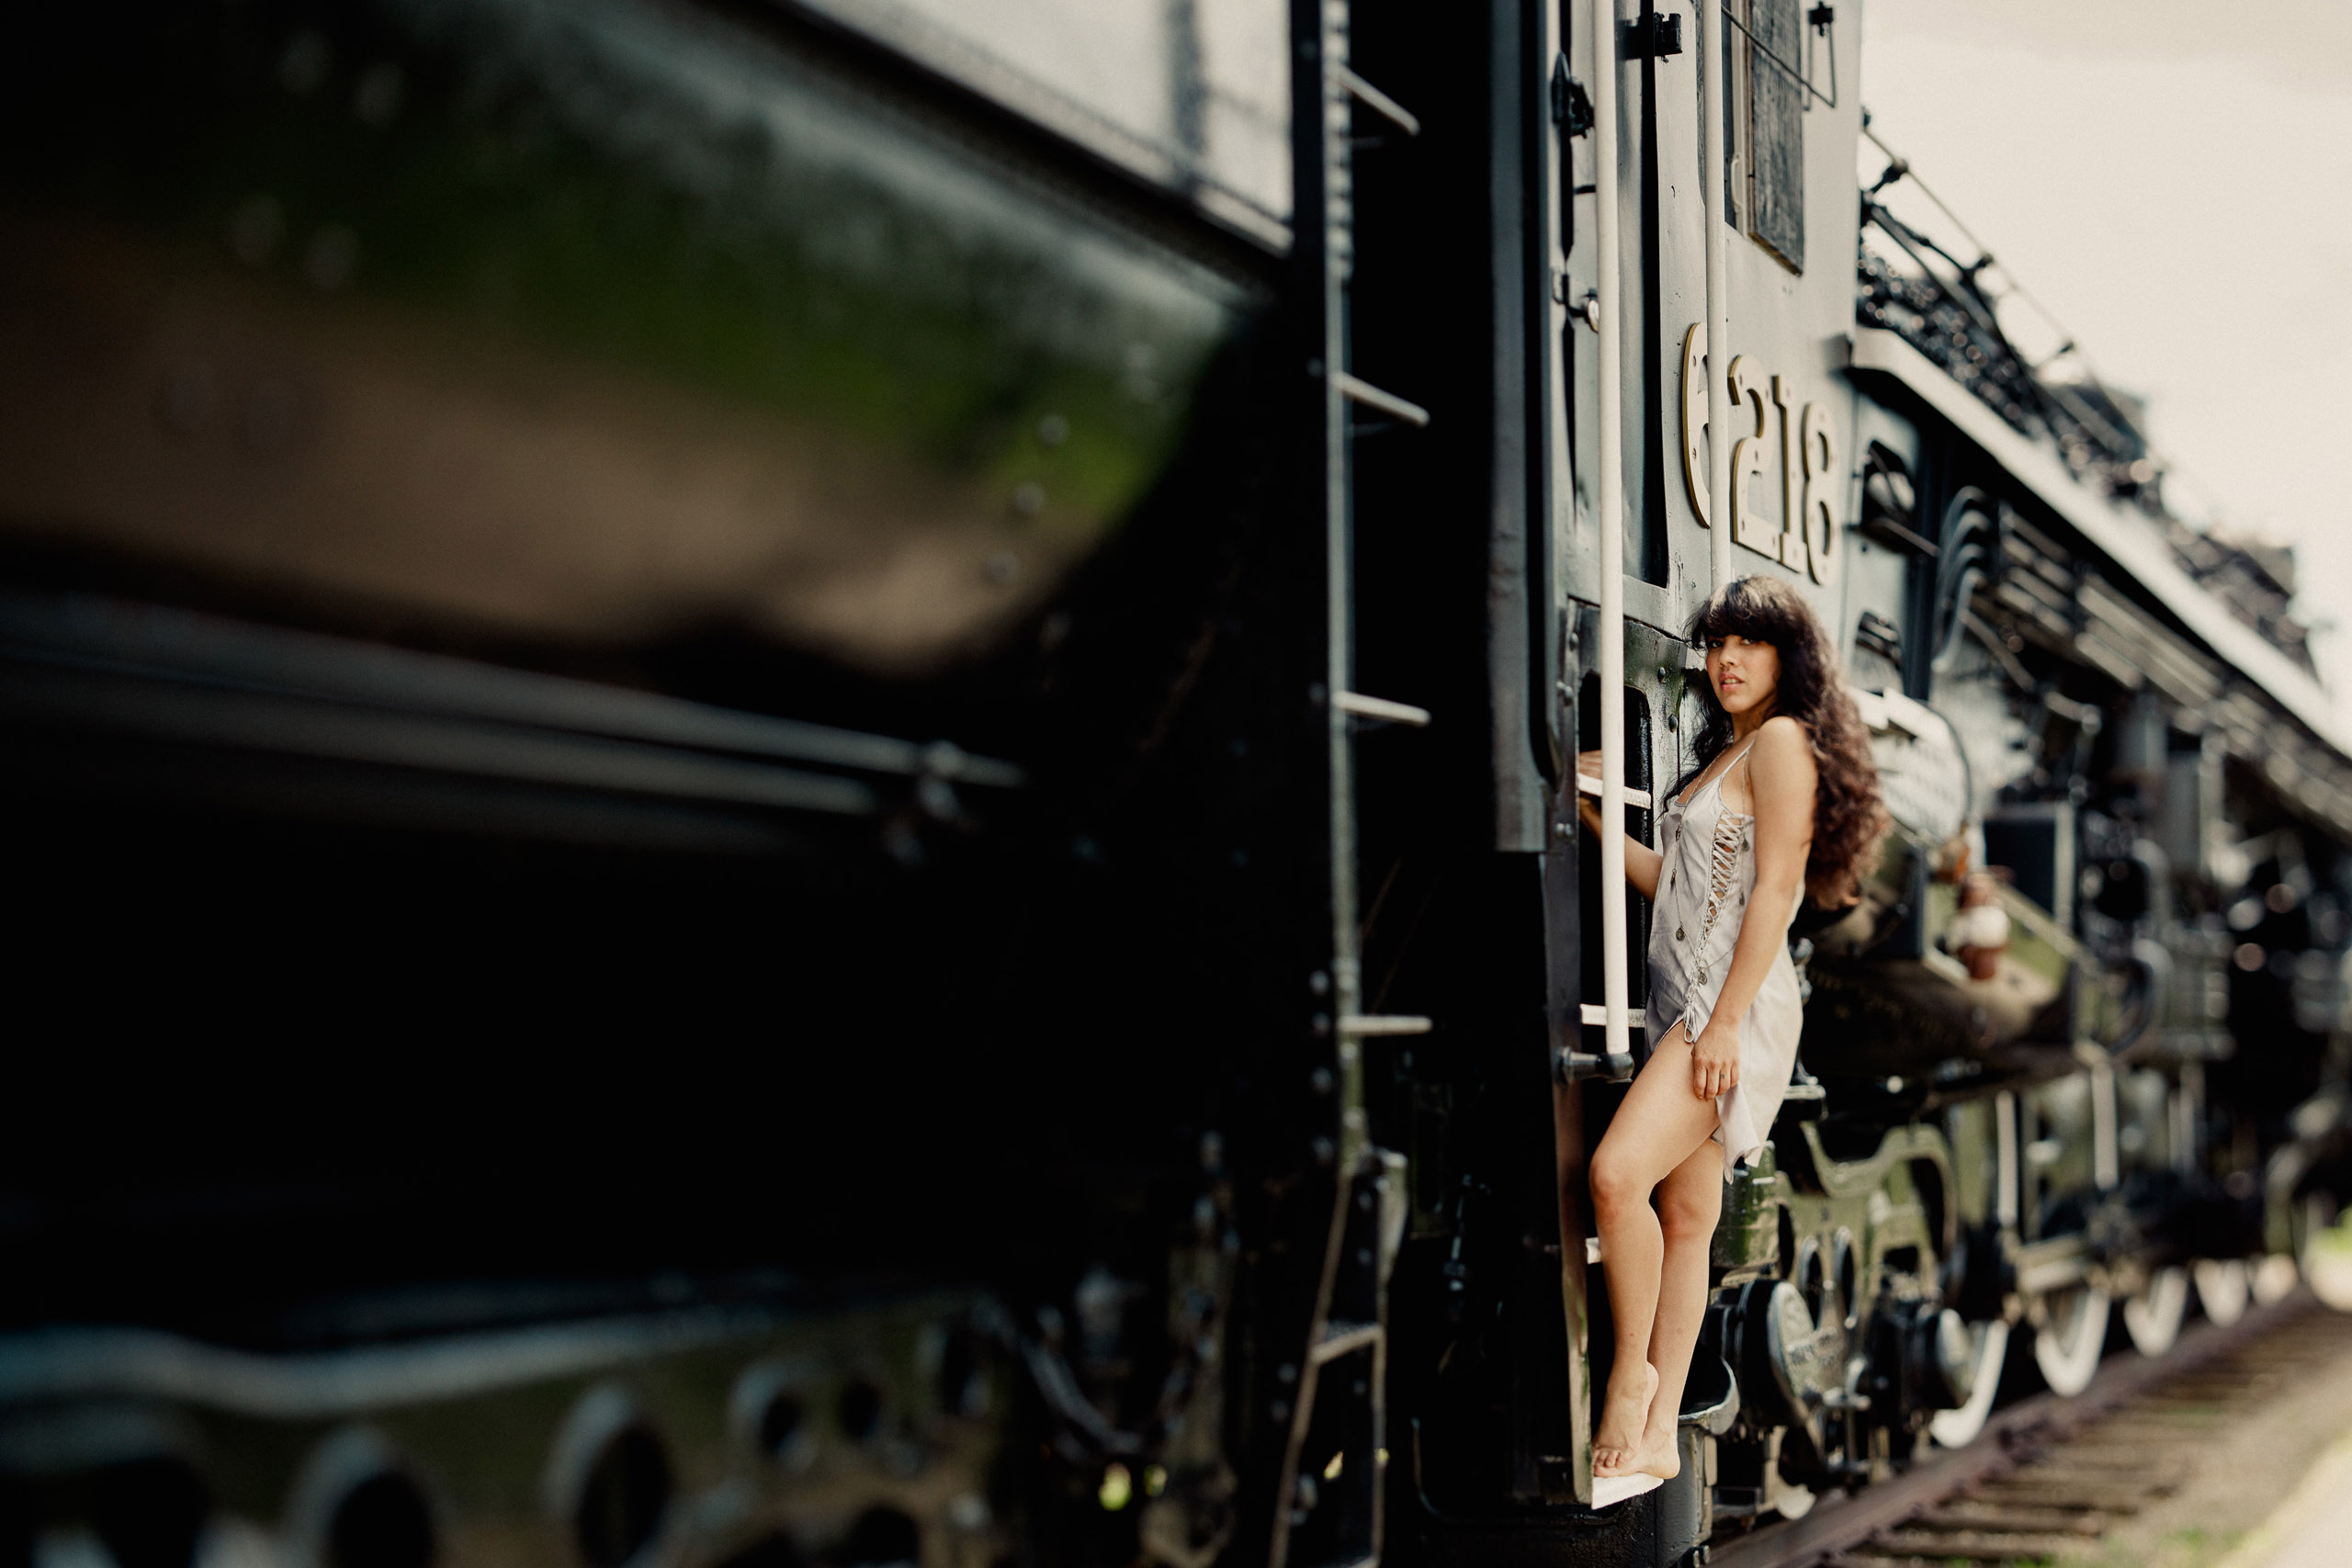 outdoor boudoir afterglow train railway girl sexy photographer style long hair